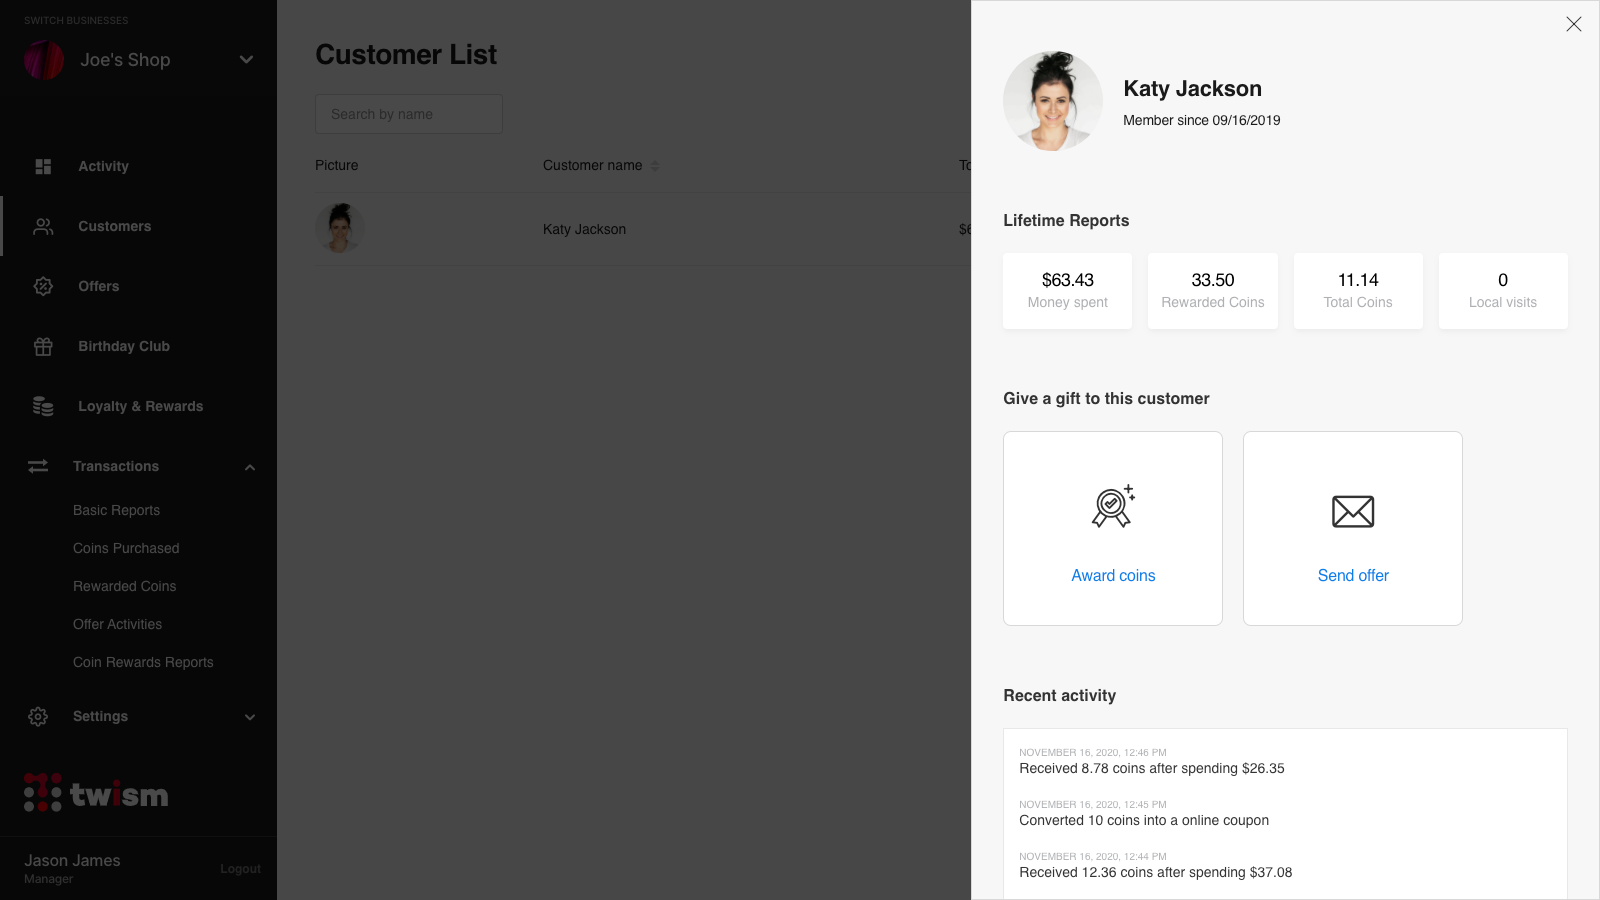 Complete profiles and reporting for every customer